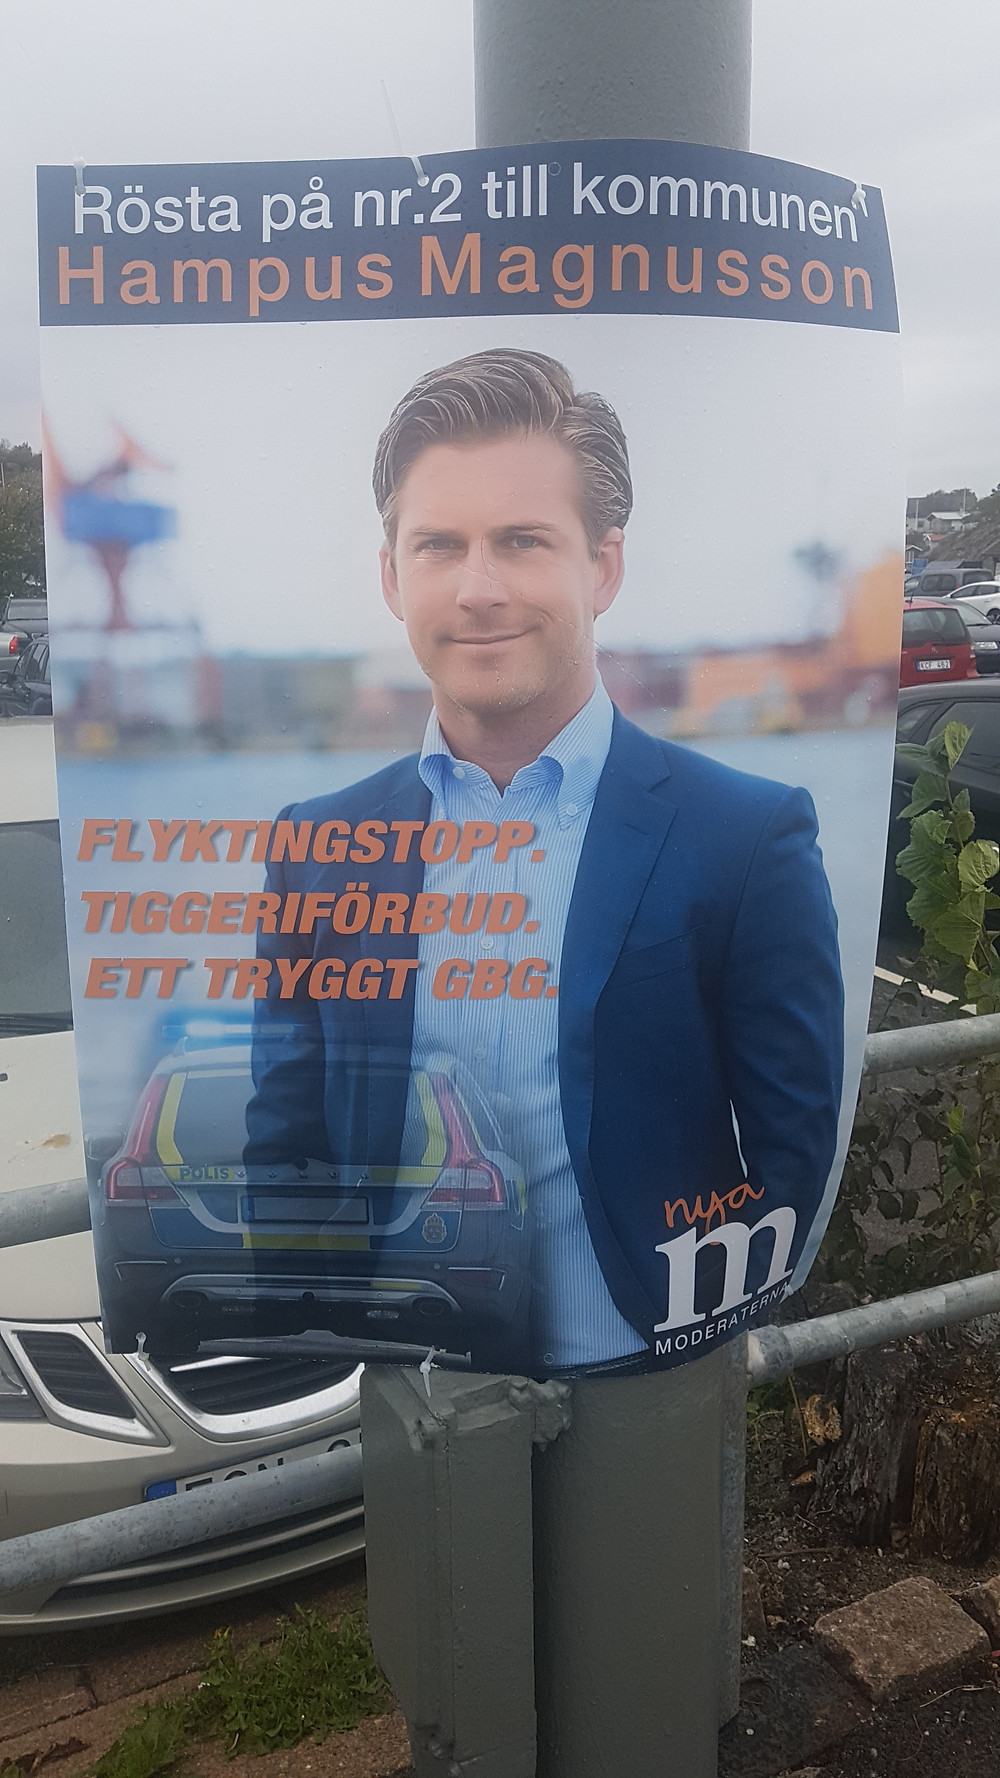 ' Stop refugees. Stop begging. For a safe Gothenburg.' Election poster of the Moderaterna in Gothenburg. (Foto: private)